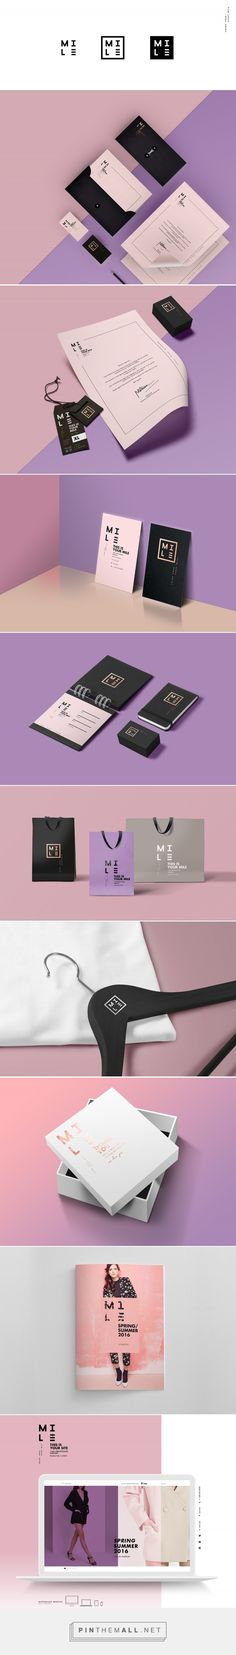 MILE Fashion Brand Identity by Dung Tran | Fivestar Branding Agency – Design and Branding Agency & Inspiration Gallery